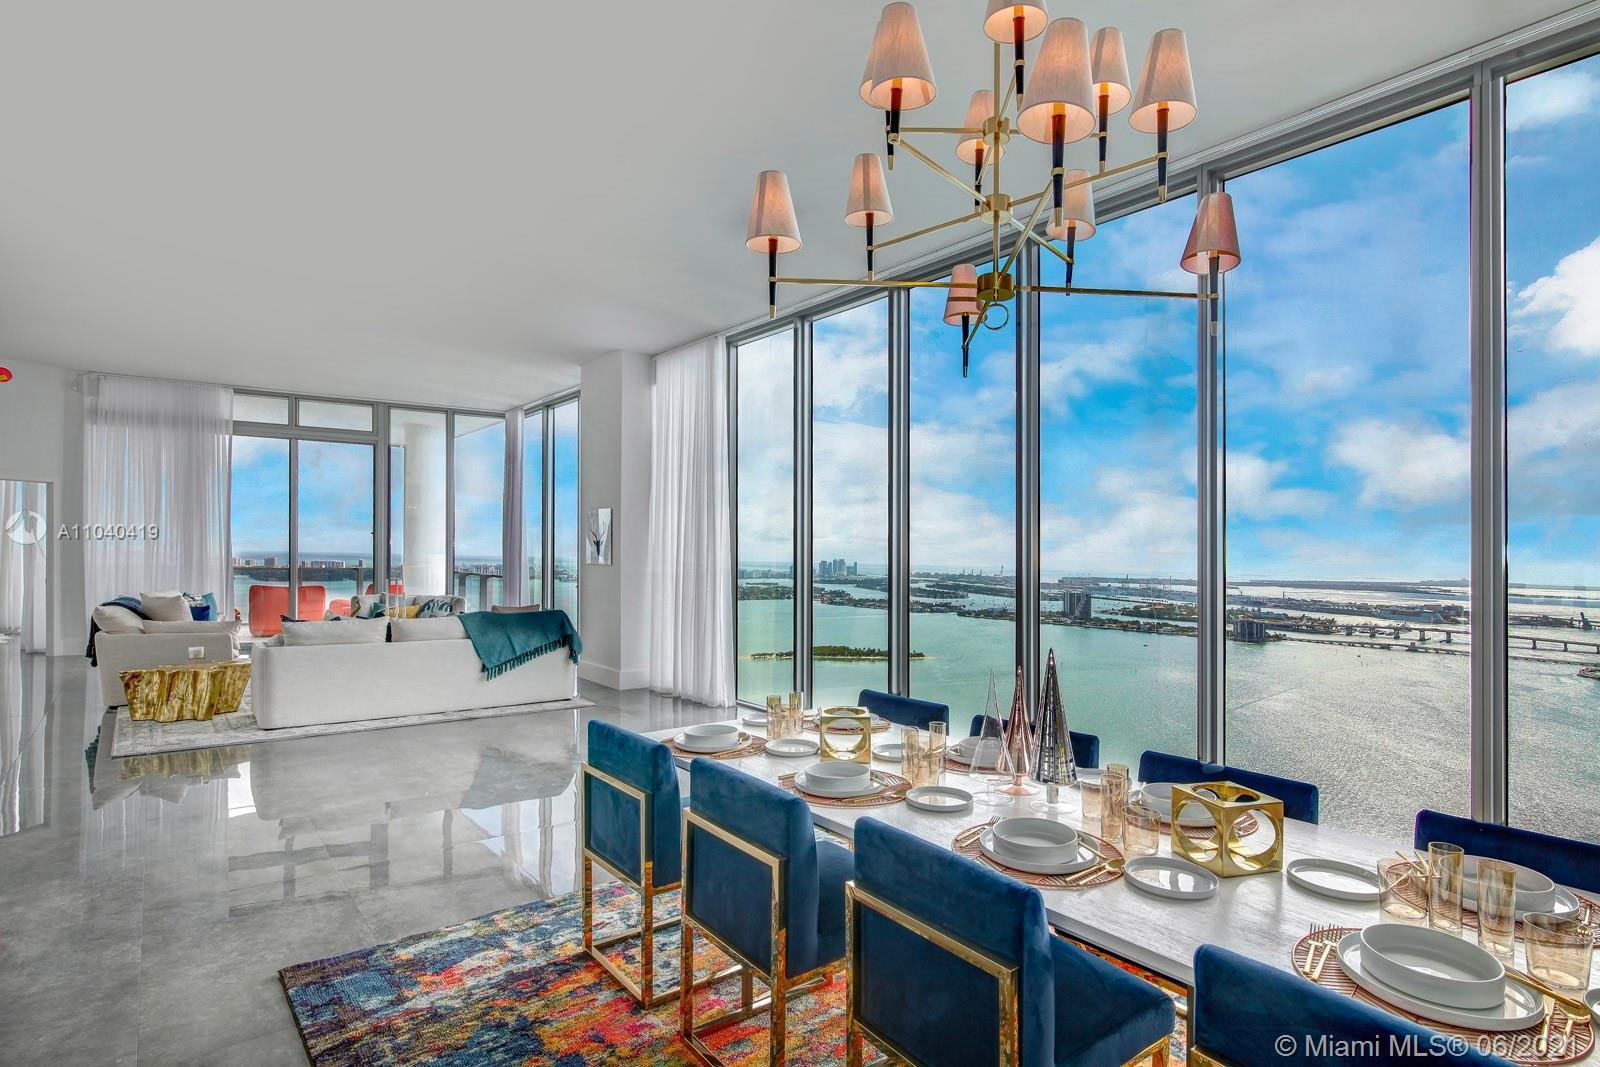 The best view in the city! Stunning Penthouse in Biscayne beach. The Penthouse faces East, South and